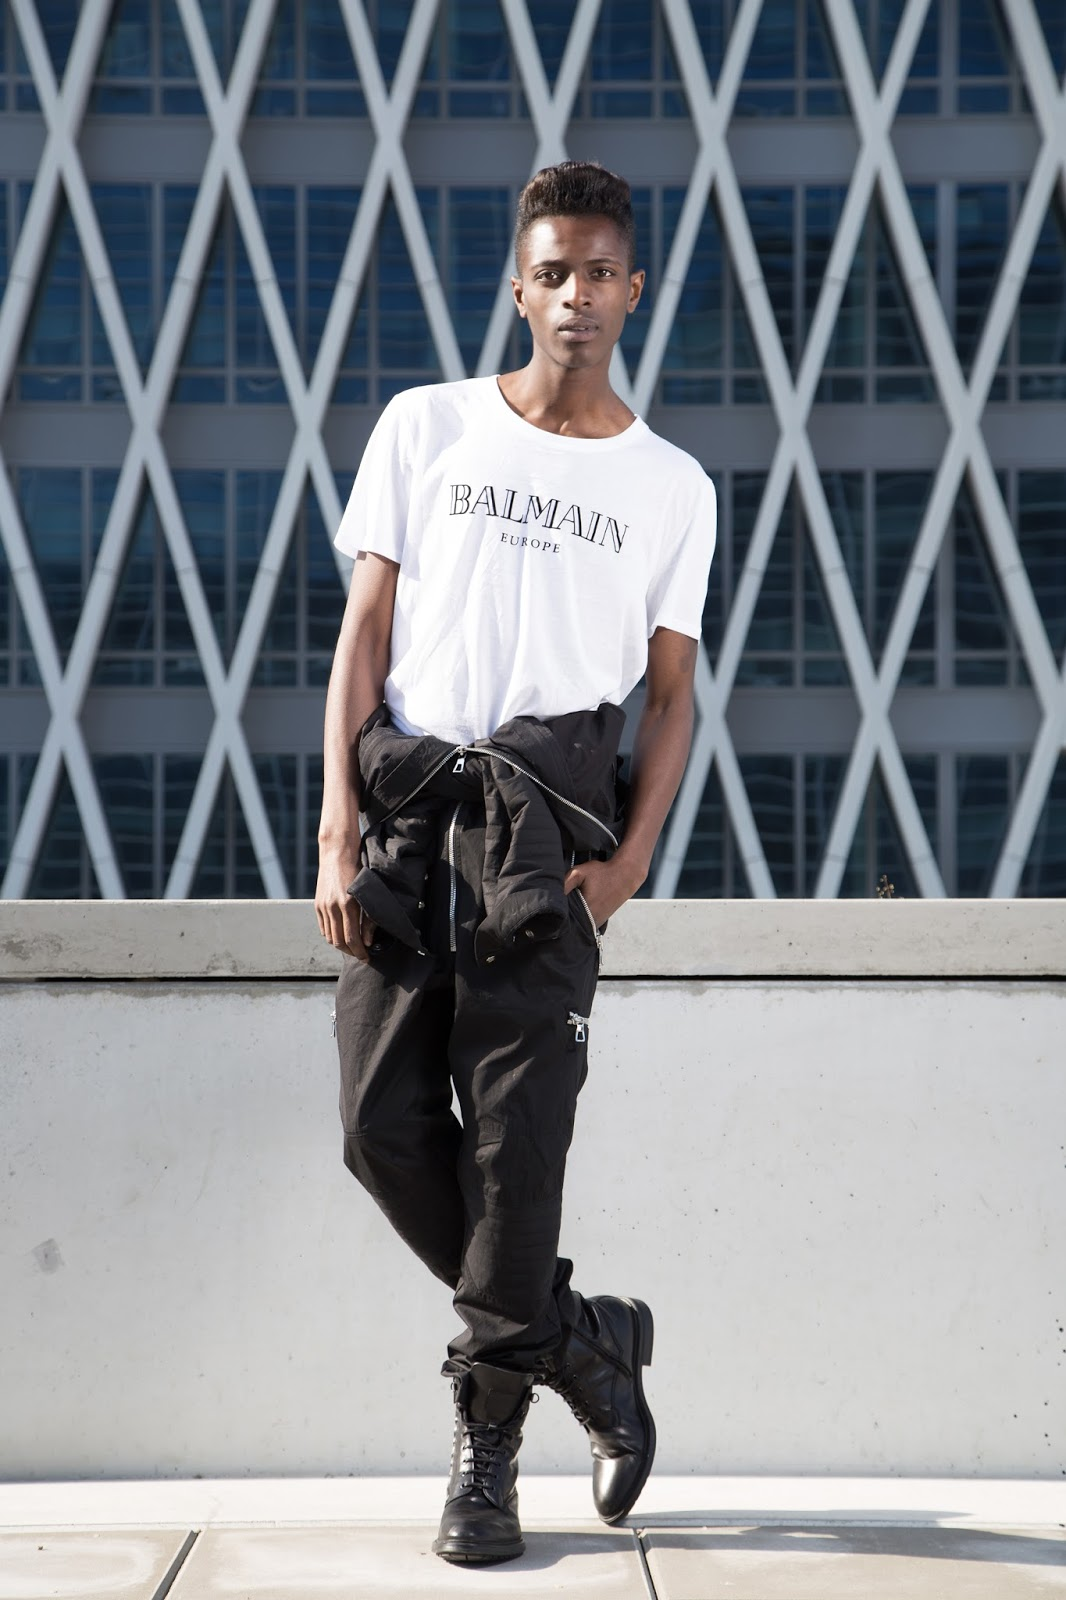 Introducing you Balmain x H&M men's collection + street style guide for Balmain x H&M men's collection written by jonthegold / photography by HOYmedia ( antwerp ) wearing black jump suit and white balmain europe tshirt and HUGO by hugo boss shoes